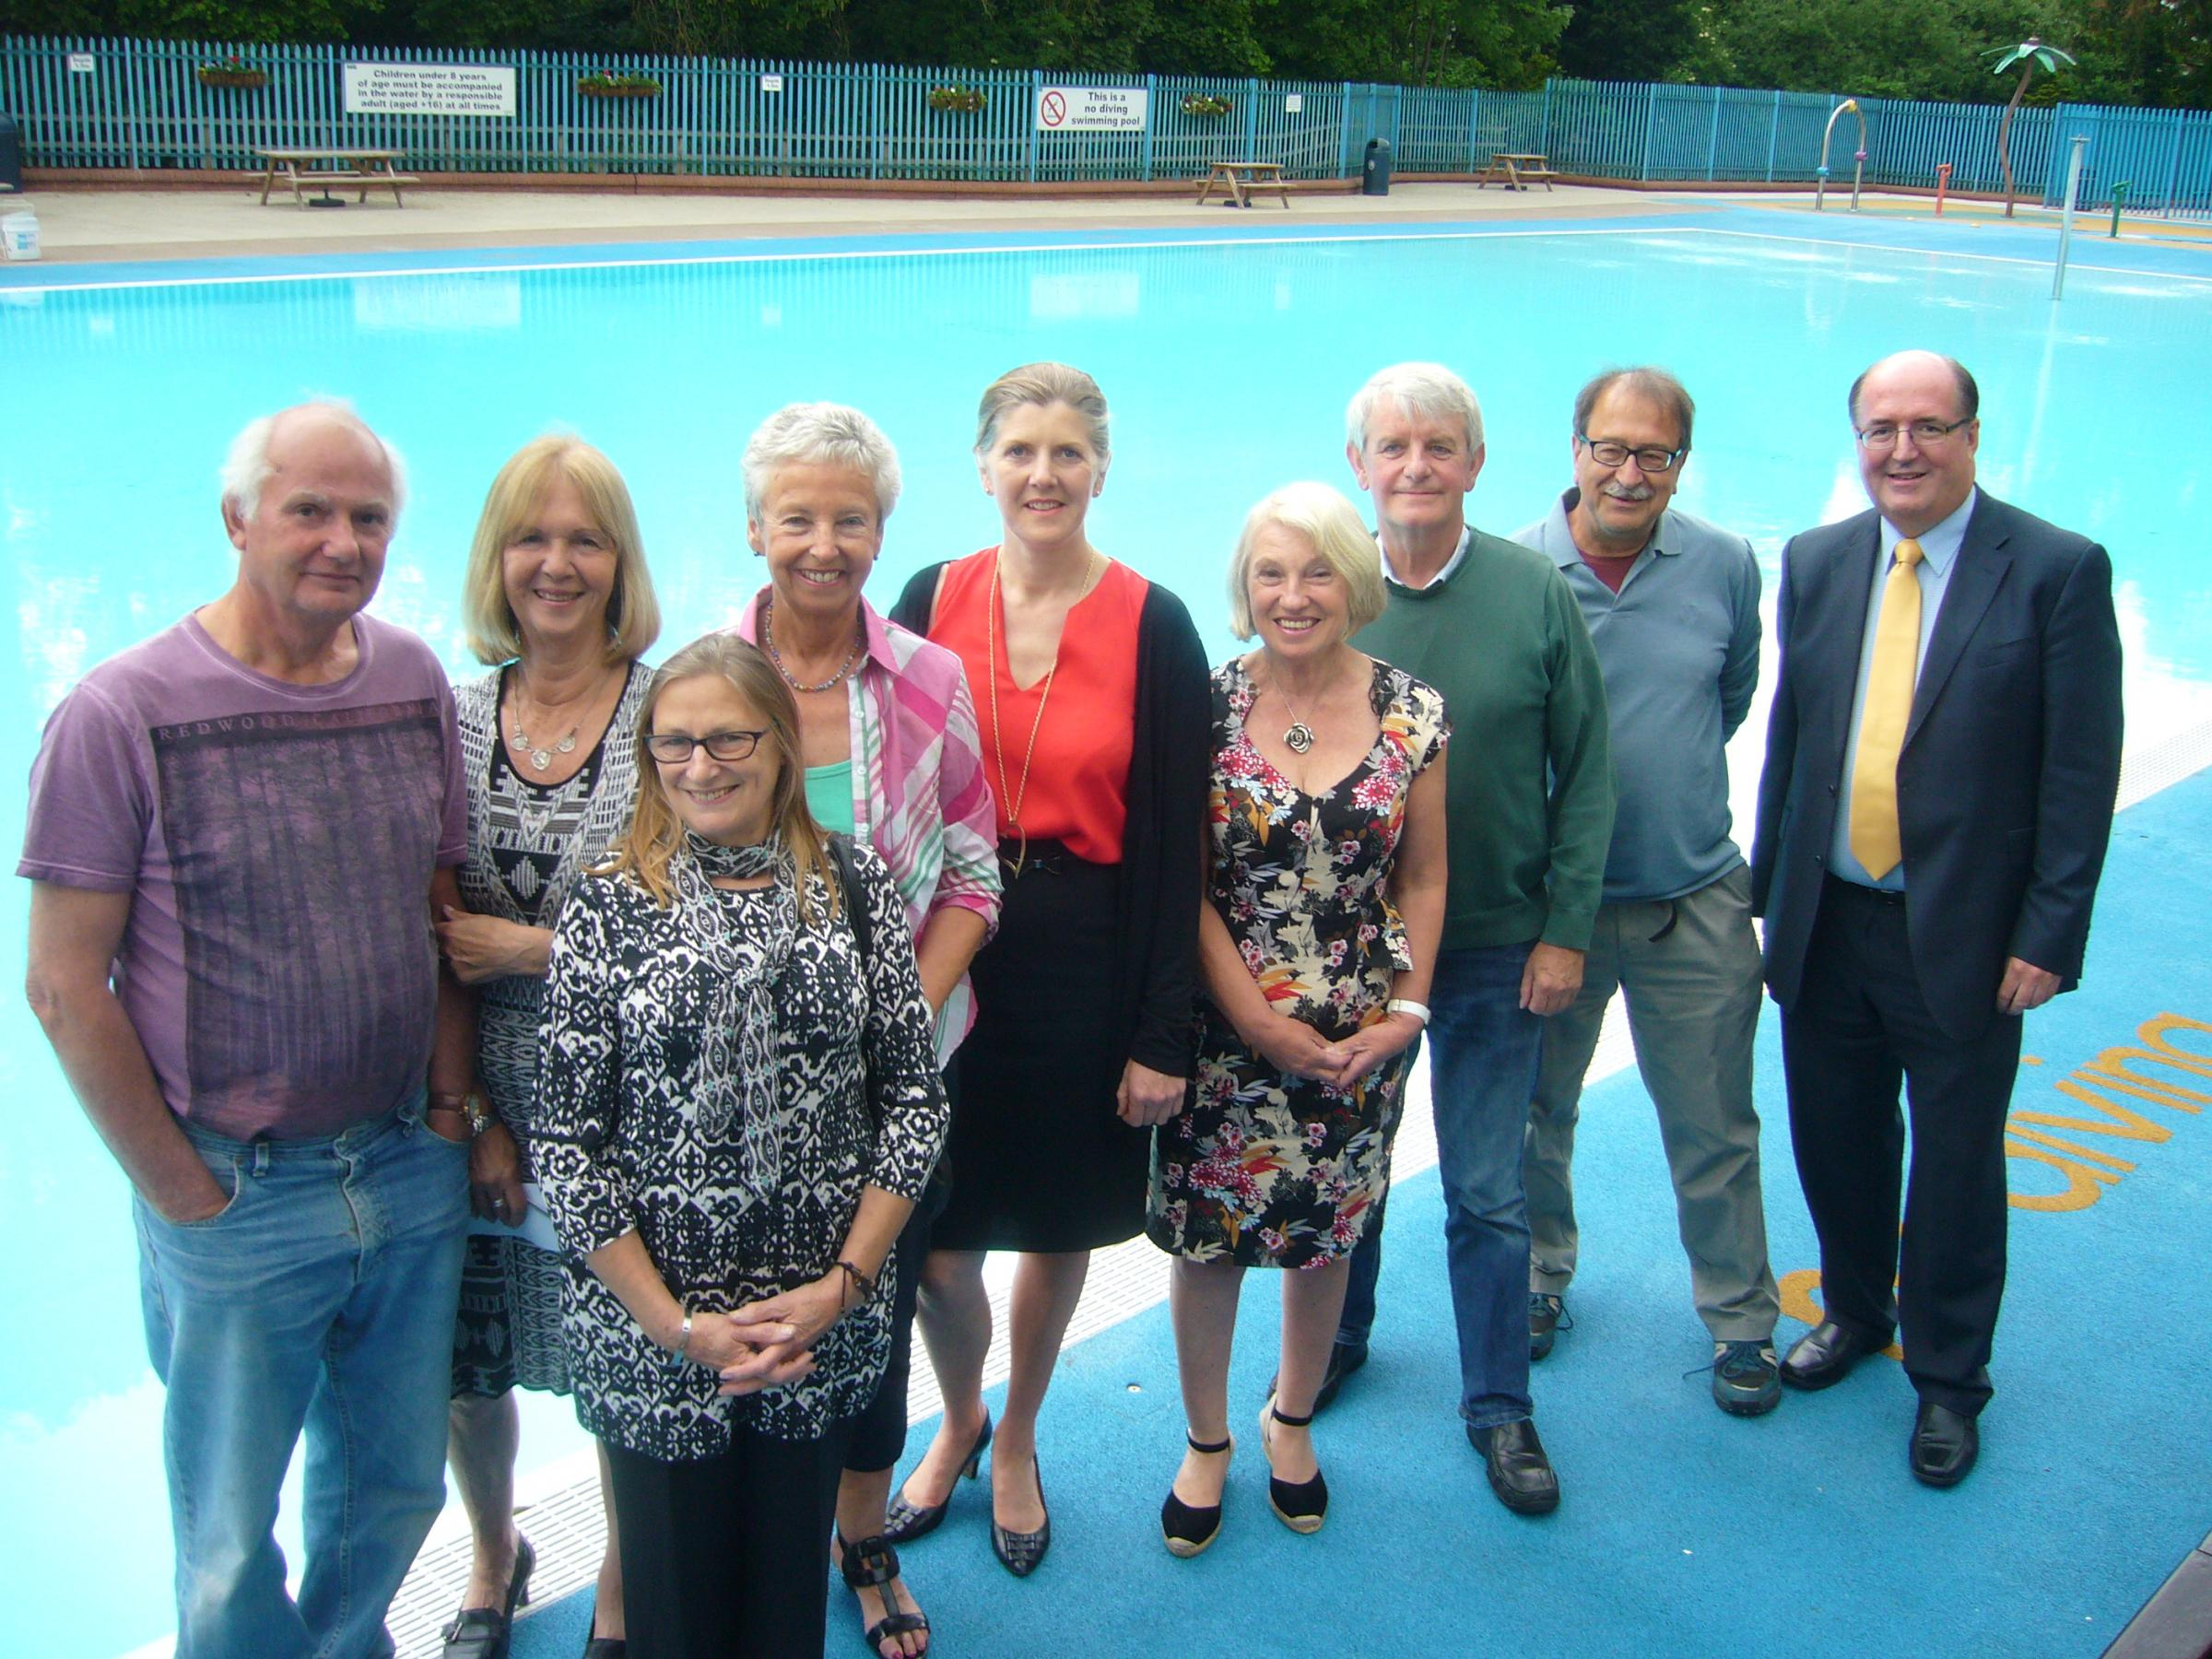 FREE TICKETS: Friends of Droitwich Spa Lido are offering free swimming tickets. SP